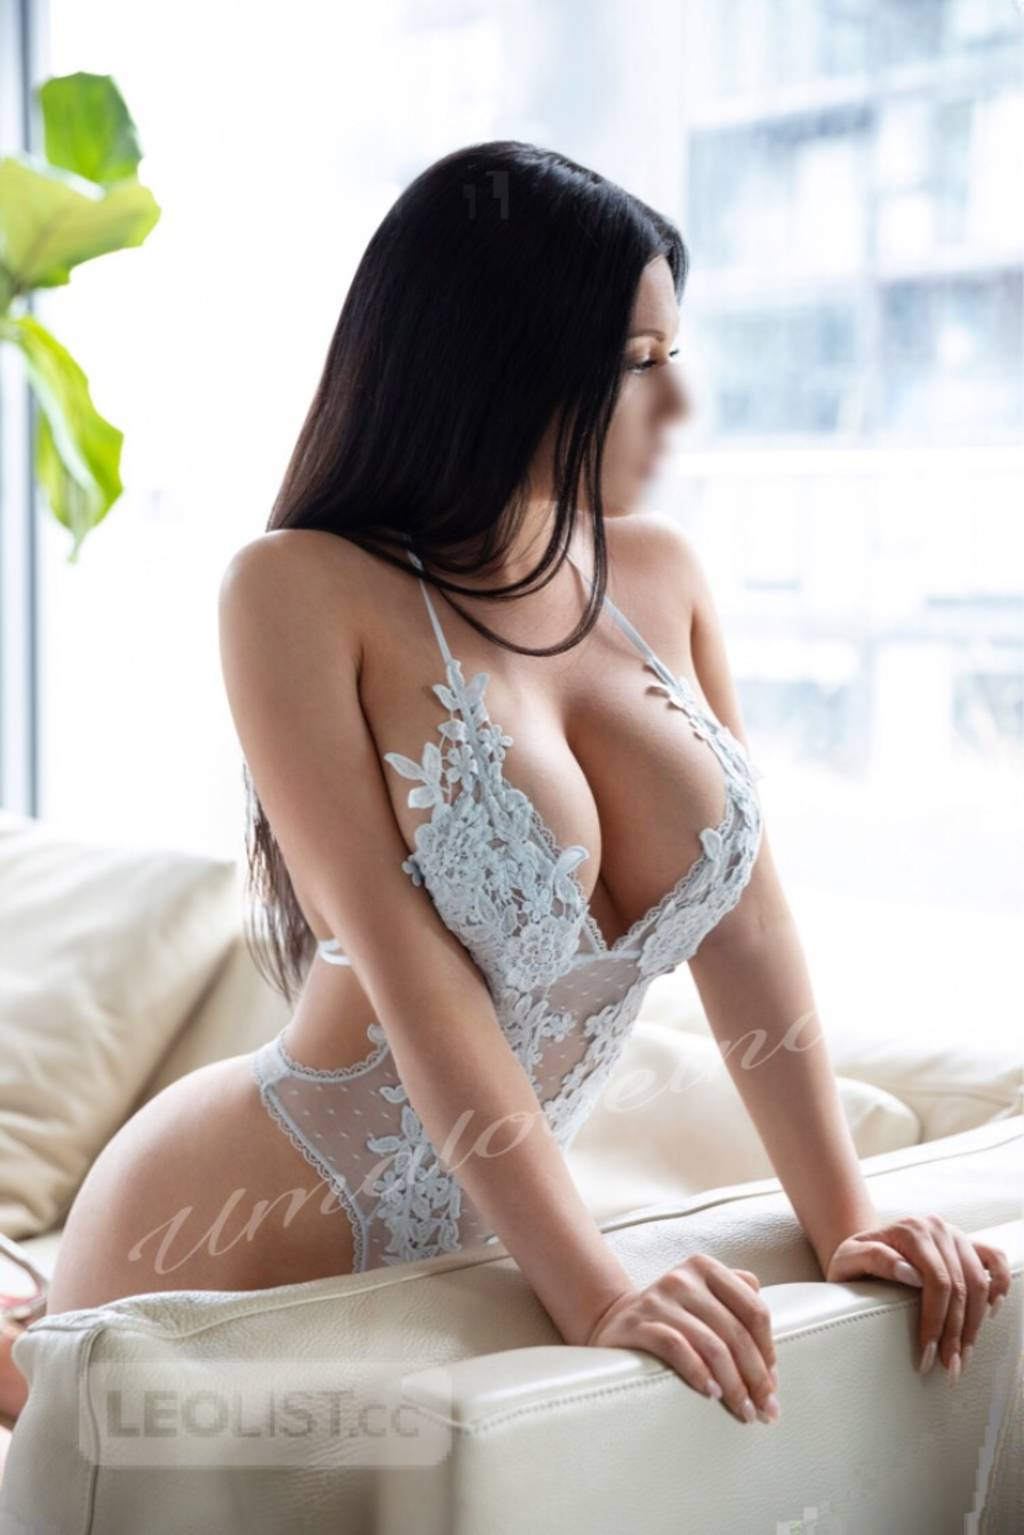 ♥️ Visiting AIRPORT today  ♥️VIP Uma Loveina ♥️Brunette Beauty